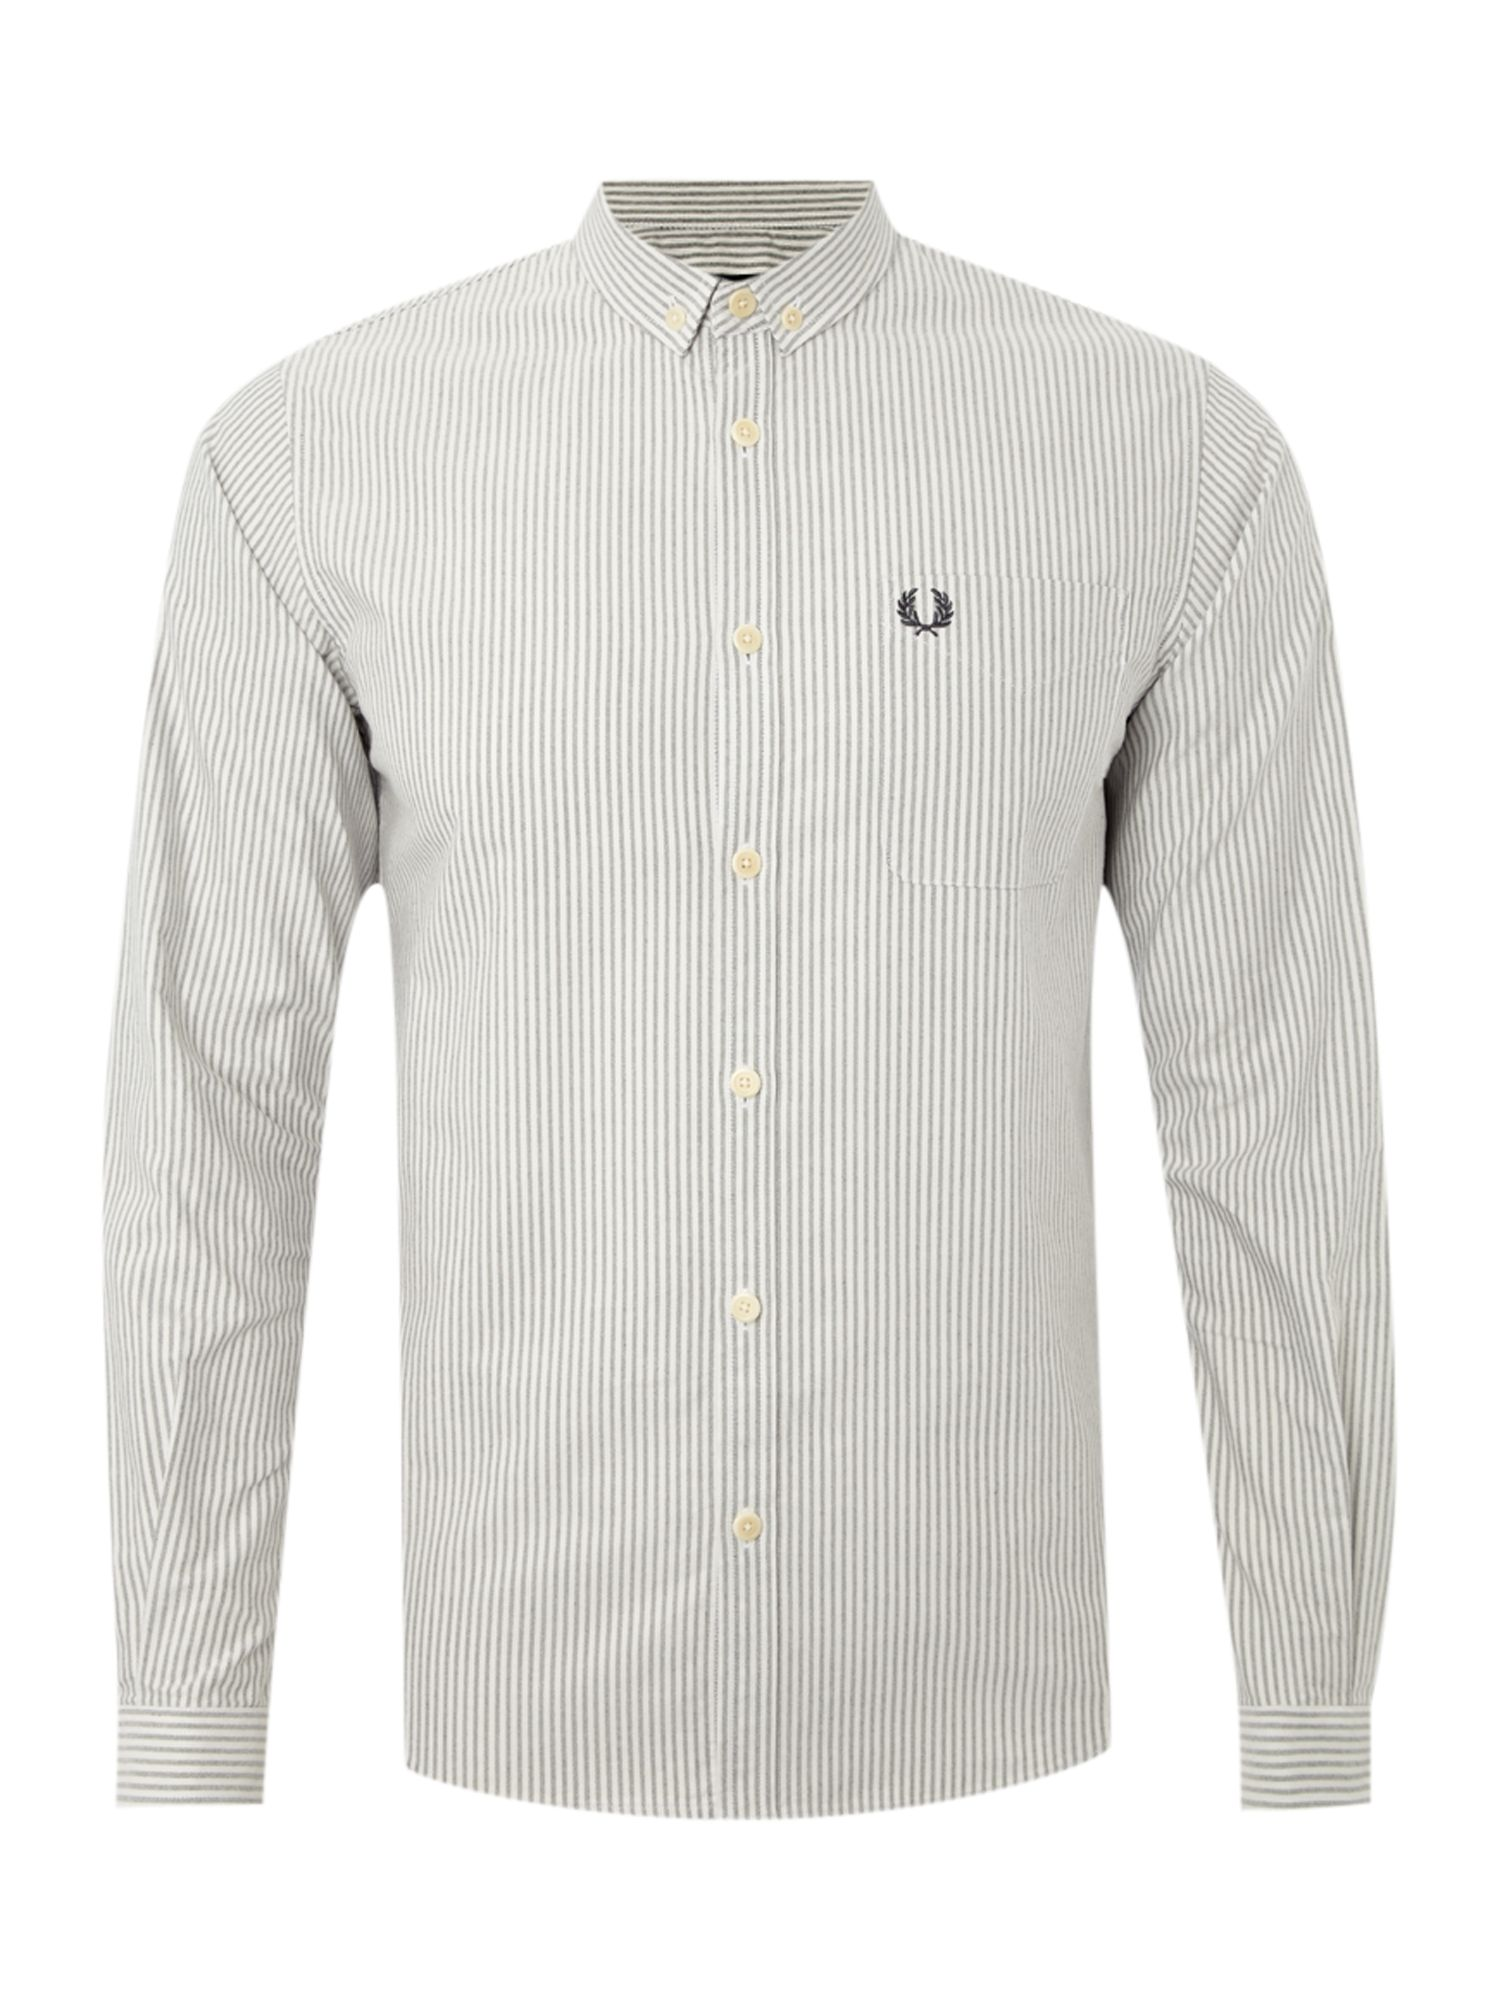 Fred Perry Long Sleeved Oxford Striped Shirt In Gray For